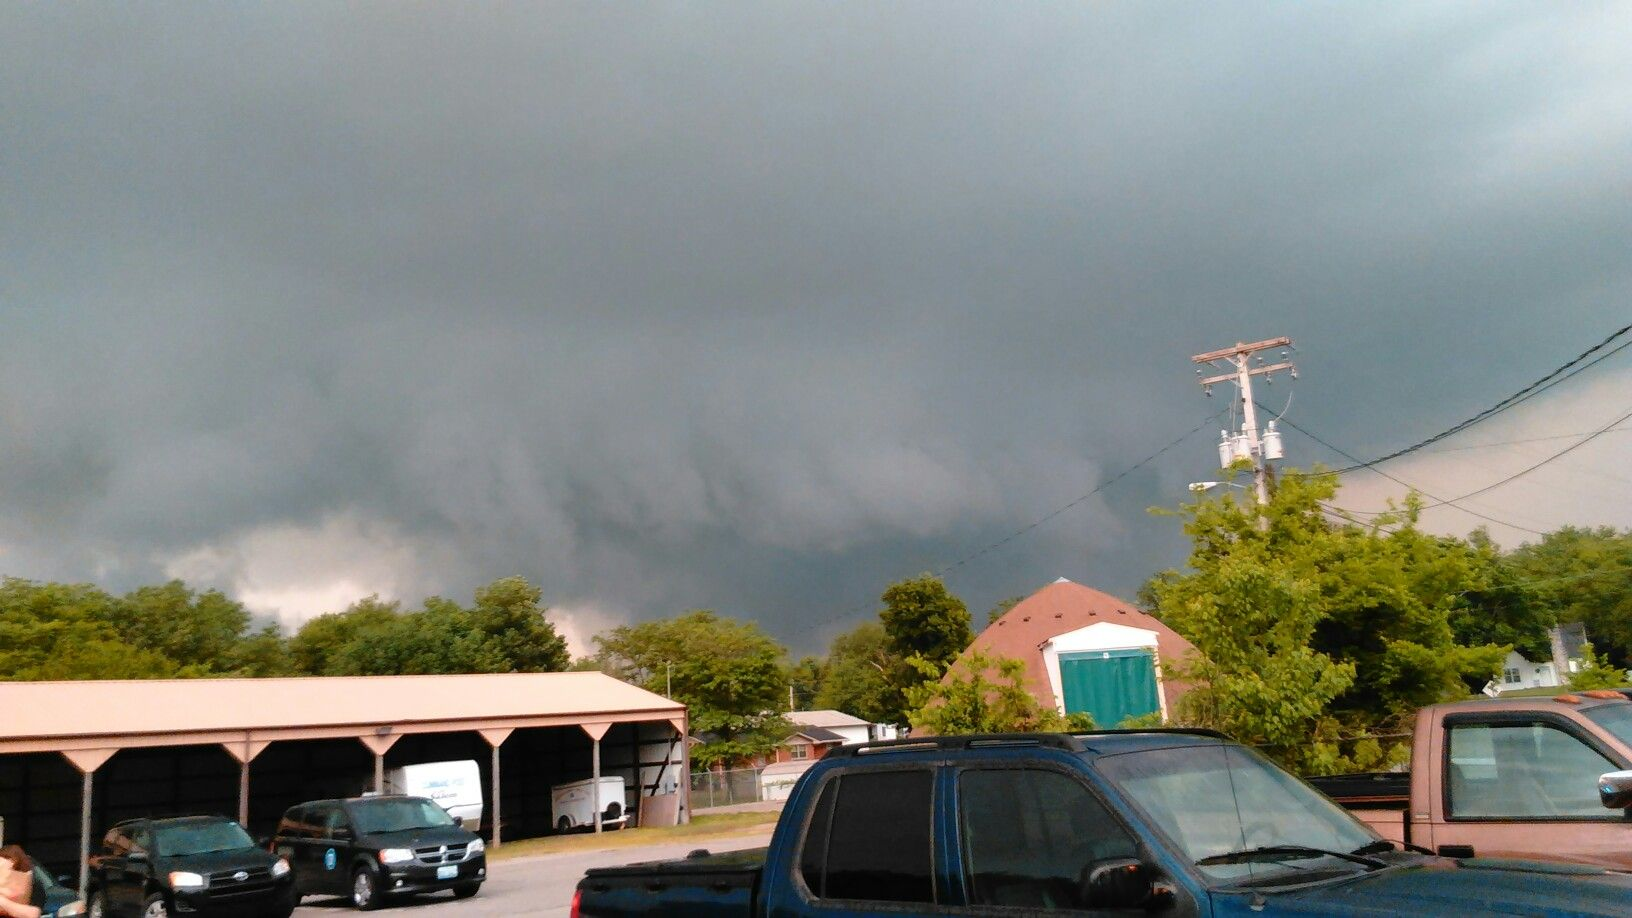 Storm clouds in Christian County, KY at Weather Spotter Operation ...